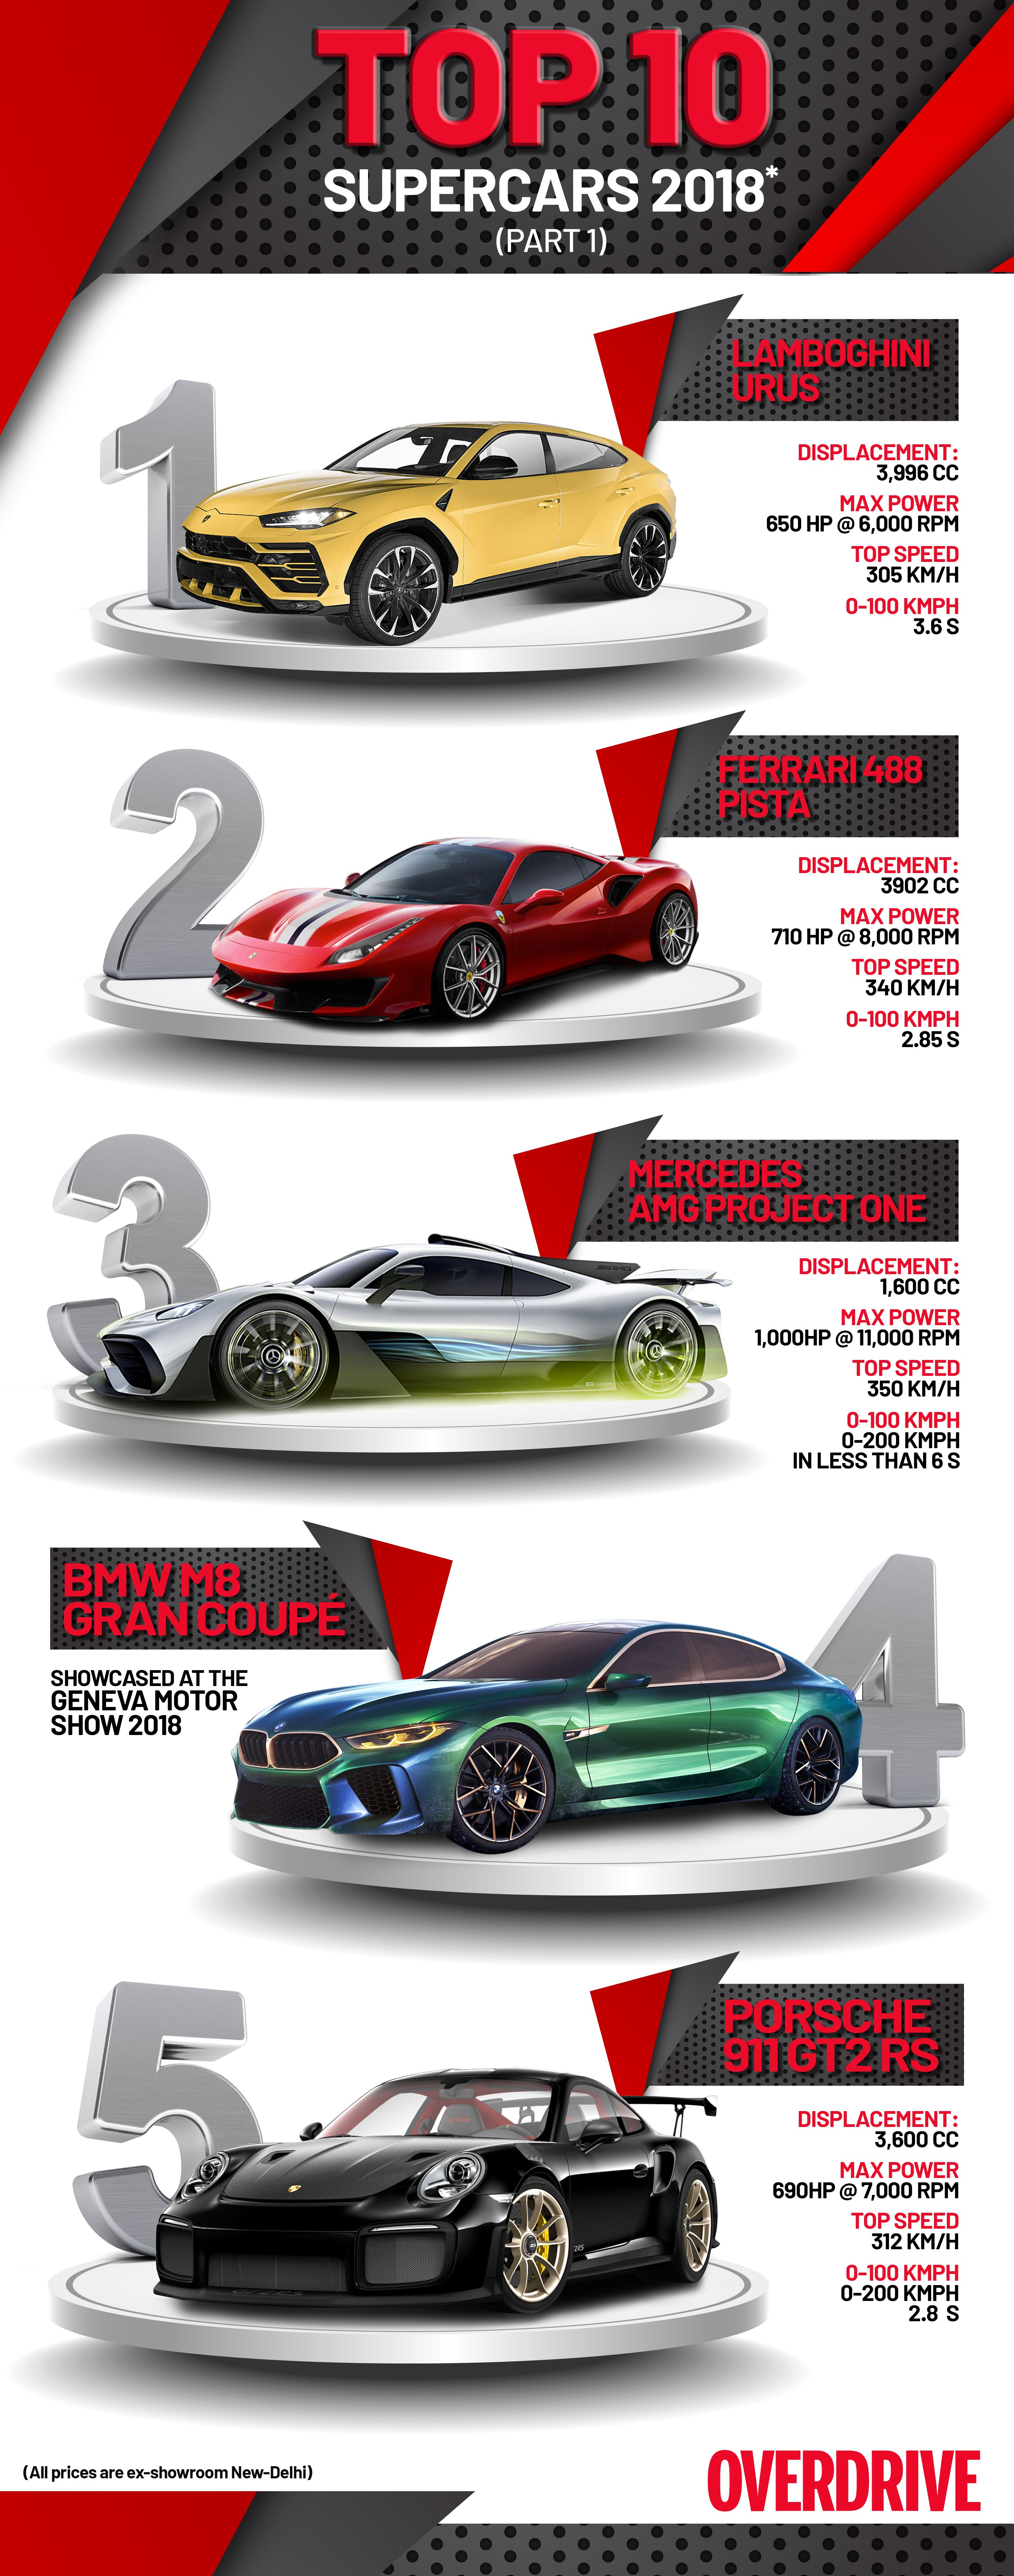 Top 10 Supercars 2018 Part 1 Bike Prices Super Cars Top 10 Supercars